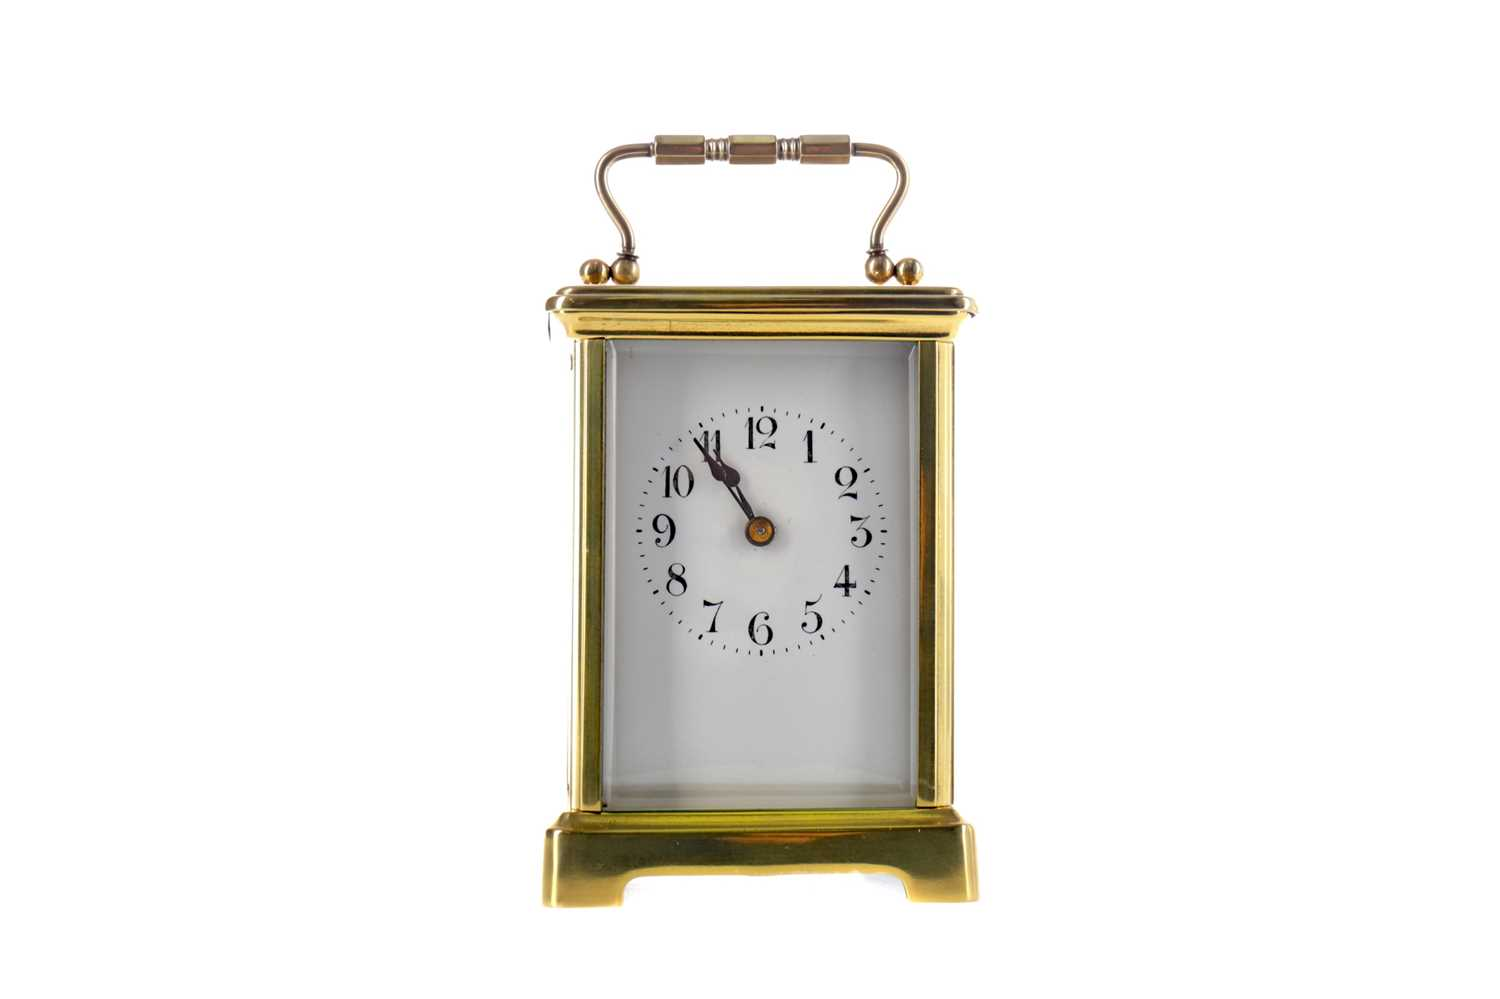 Lot 1752 - AN EARLY 20TH CENTURY CARRIAGE CLOCK